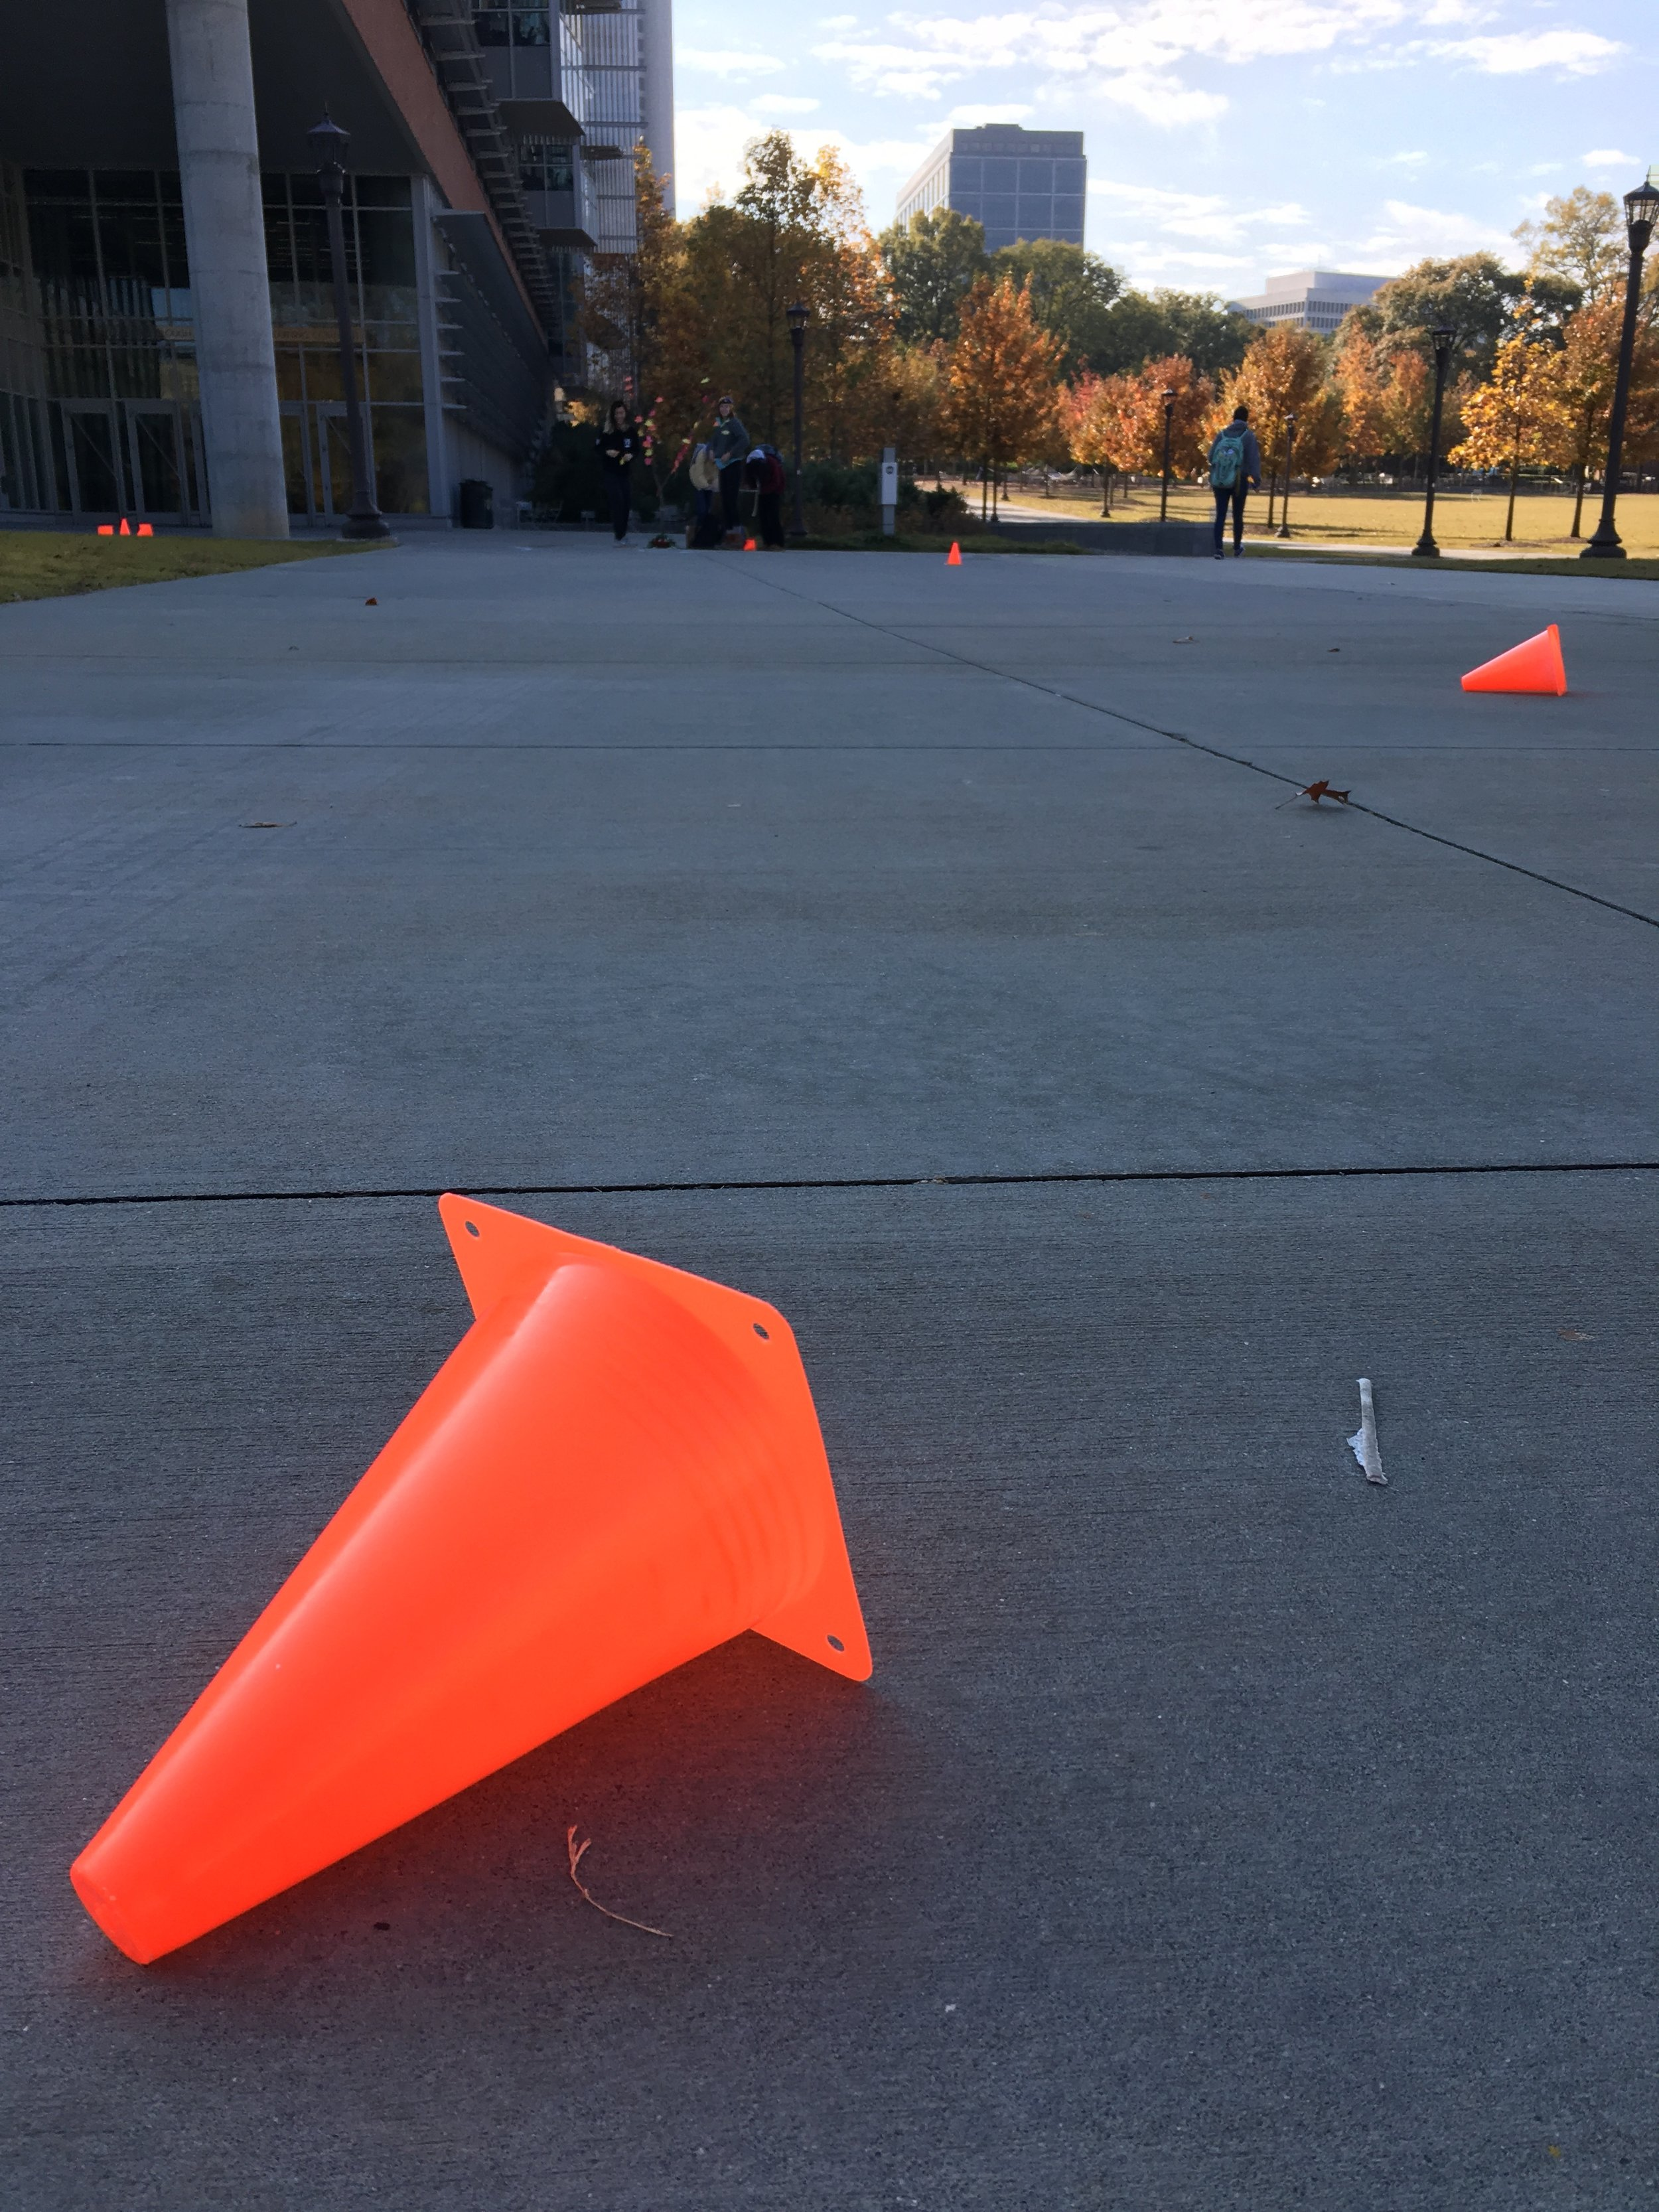 A cone that flew away during the course of our experiment.